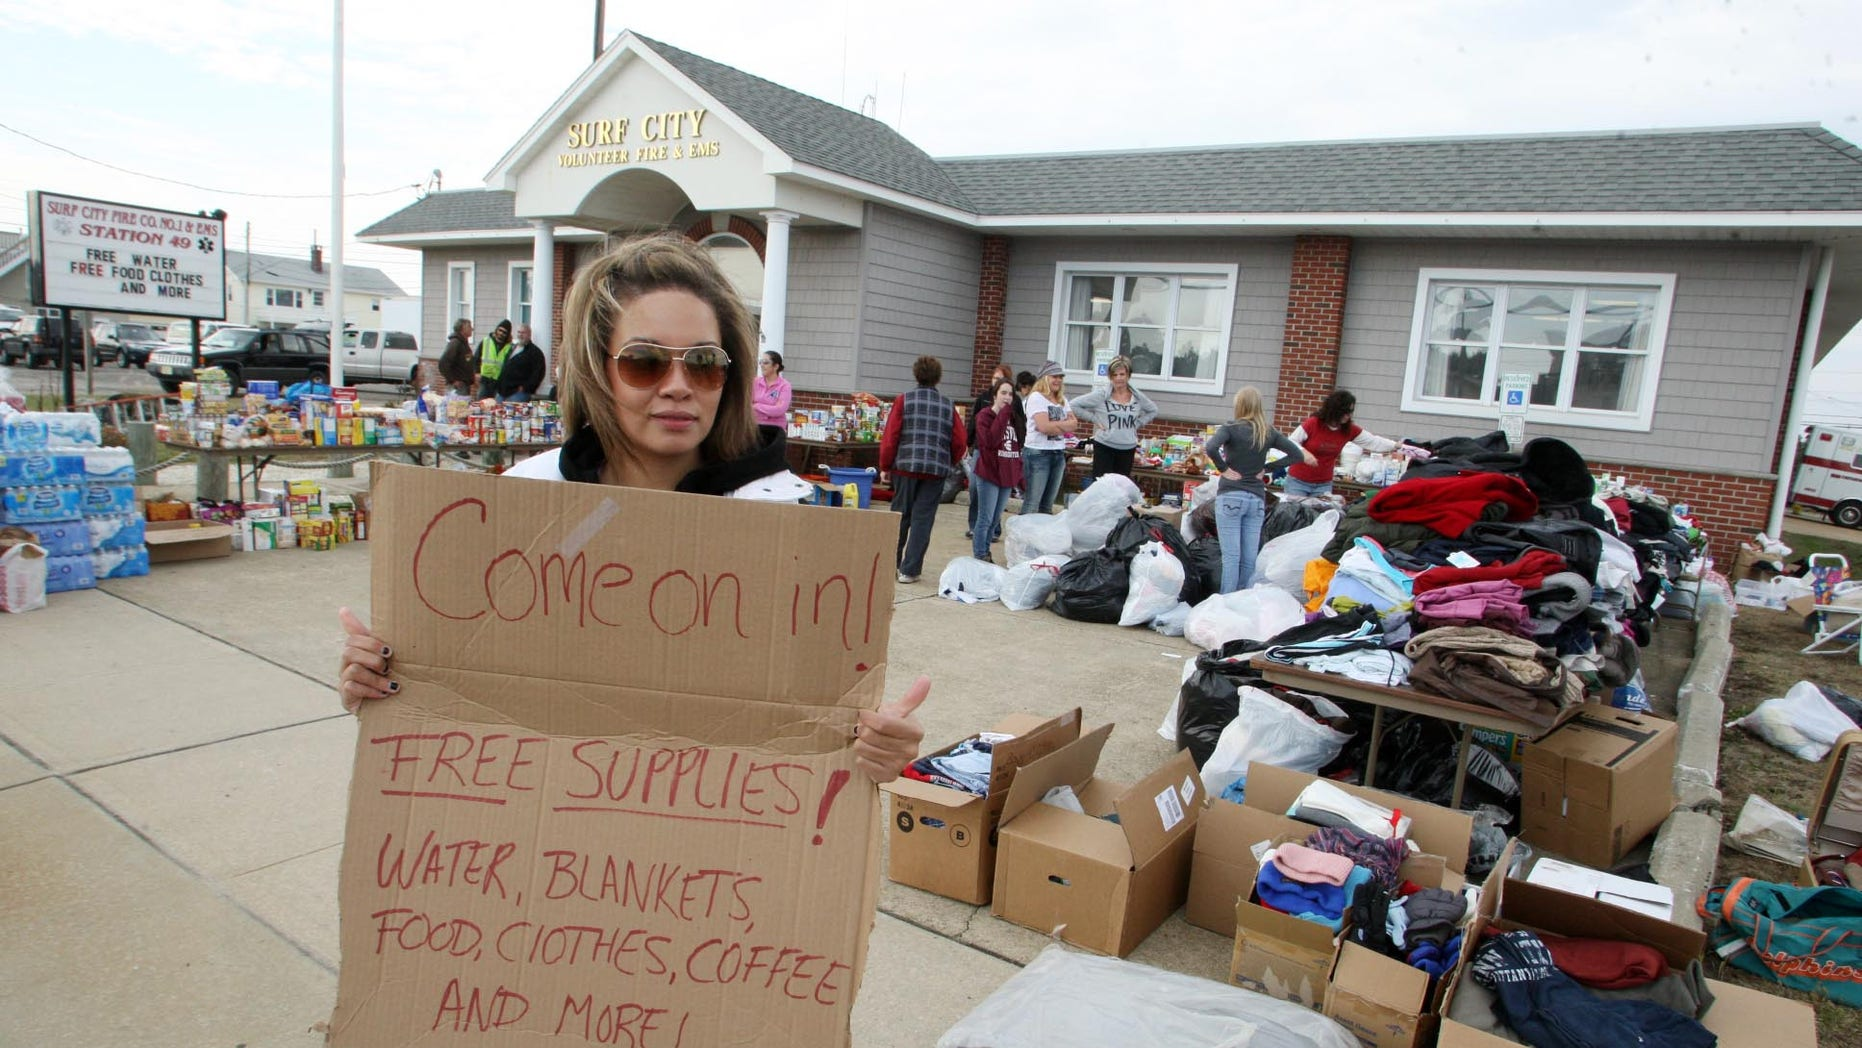 Nov. 10, 2012: Victoria Tribue, 21, volunteer member from Quakertown Pa., holds a sign advertising free supplies at the Surf City Volunteer Fire & EMS Station on Long Beach Island, N.J., after Superstorm Sandy.